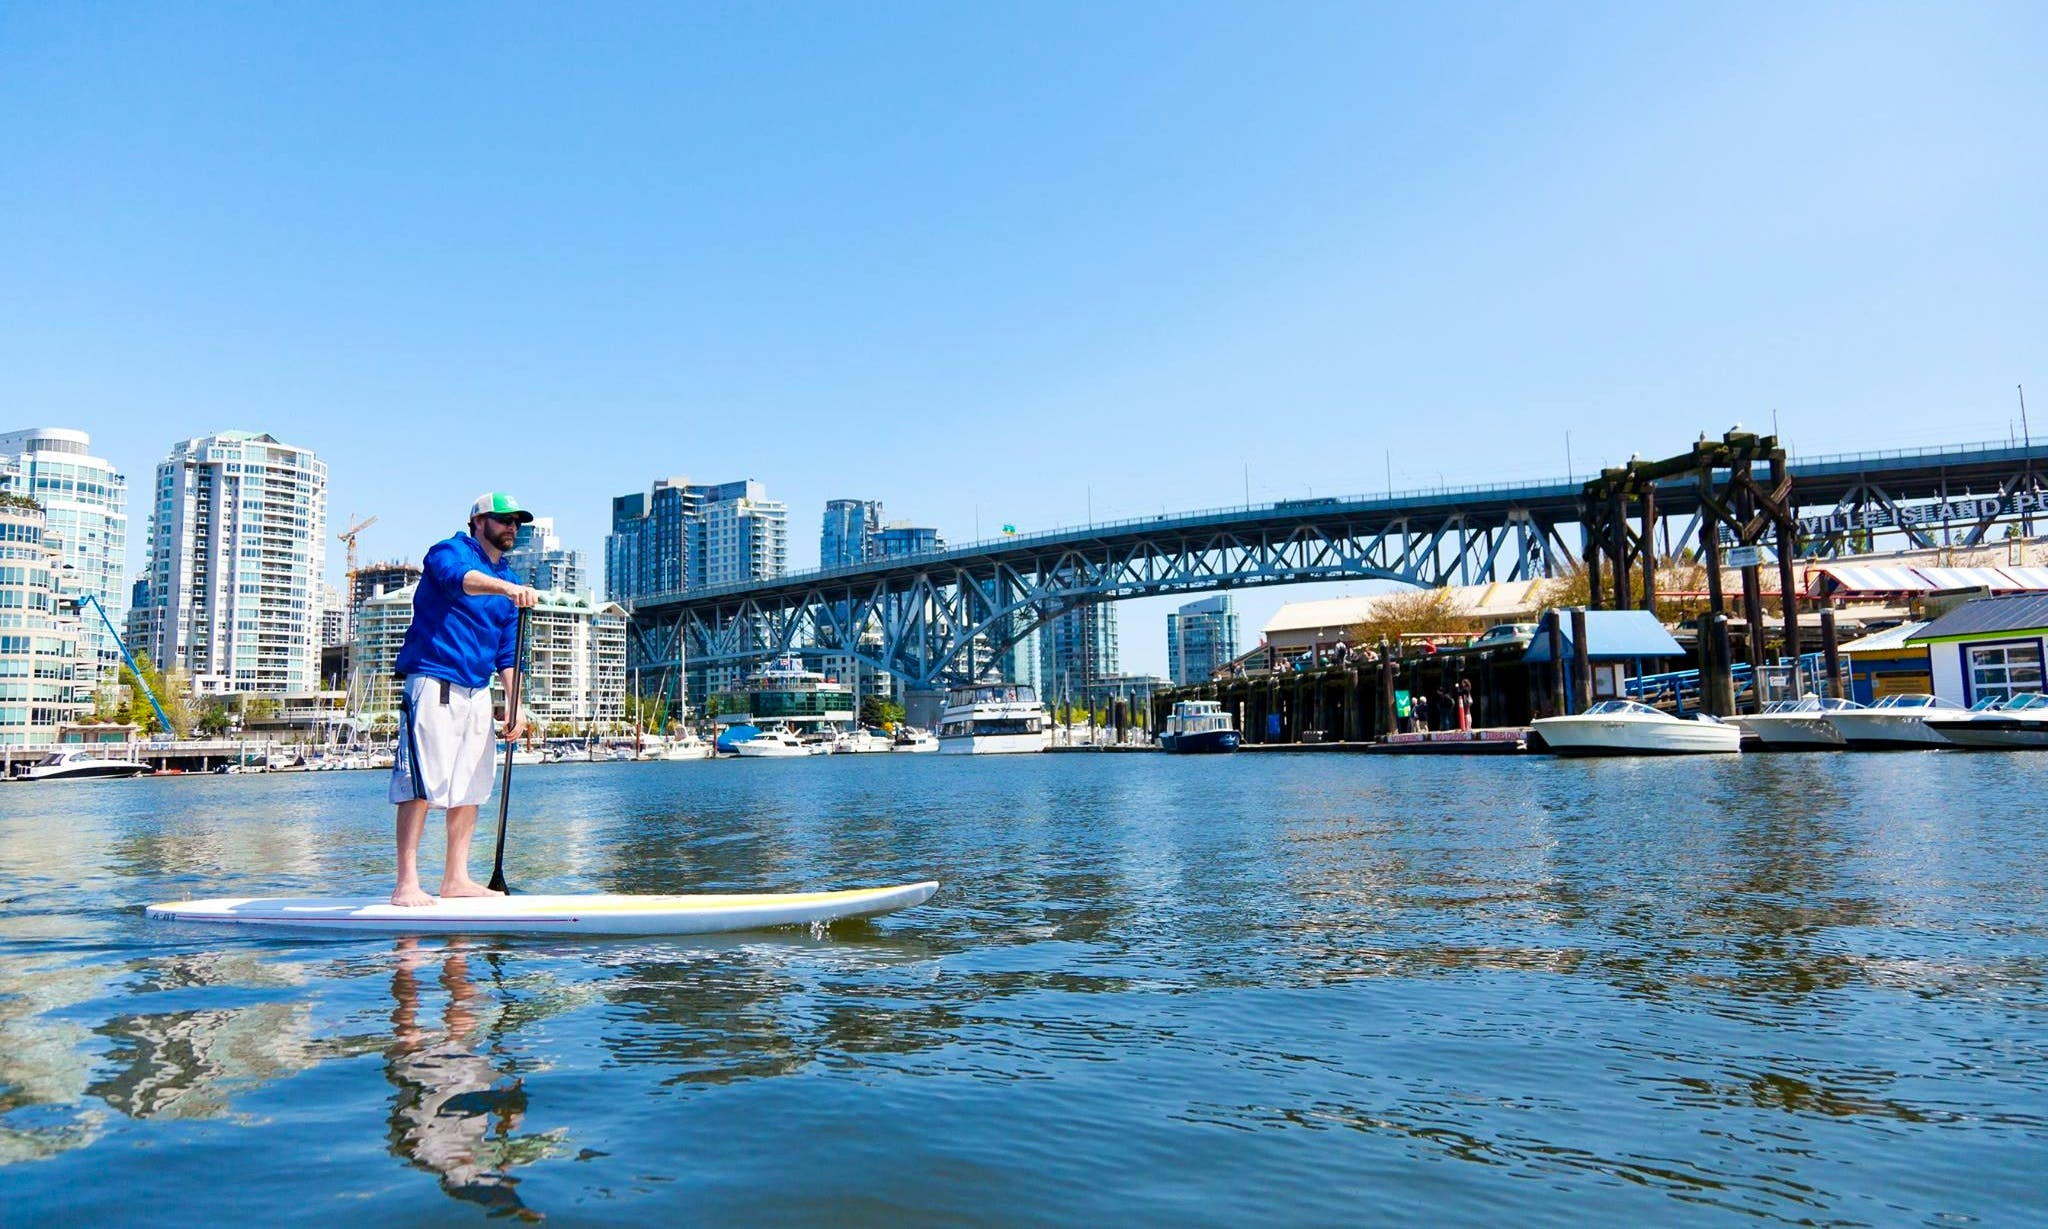 SUP Rental, Lessons  Guided Tours in Vancouver